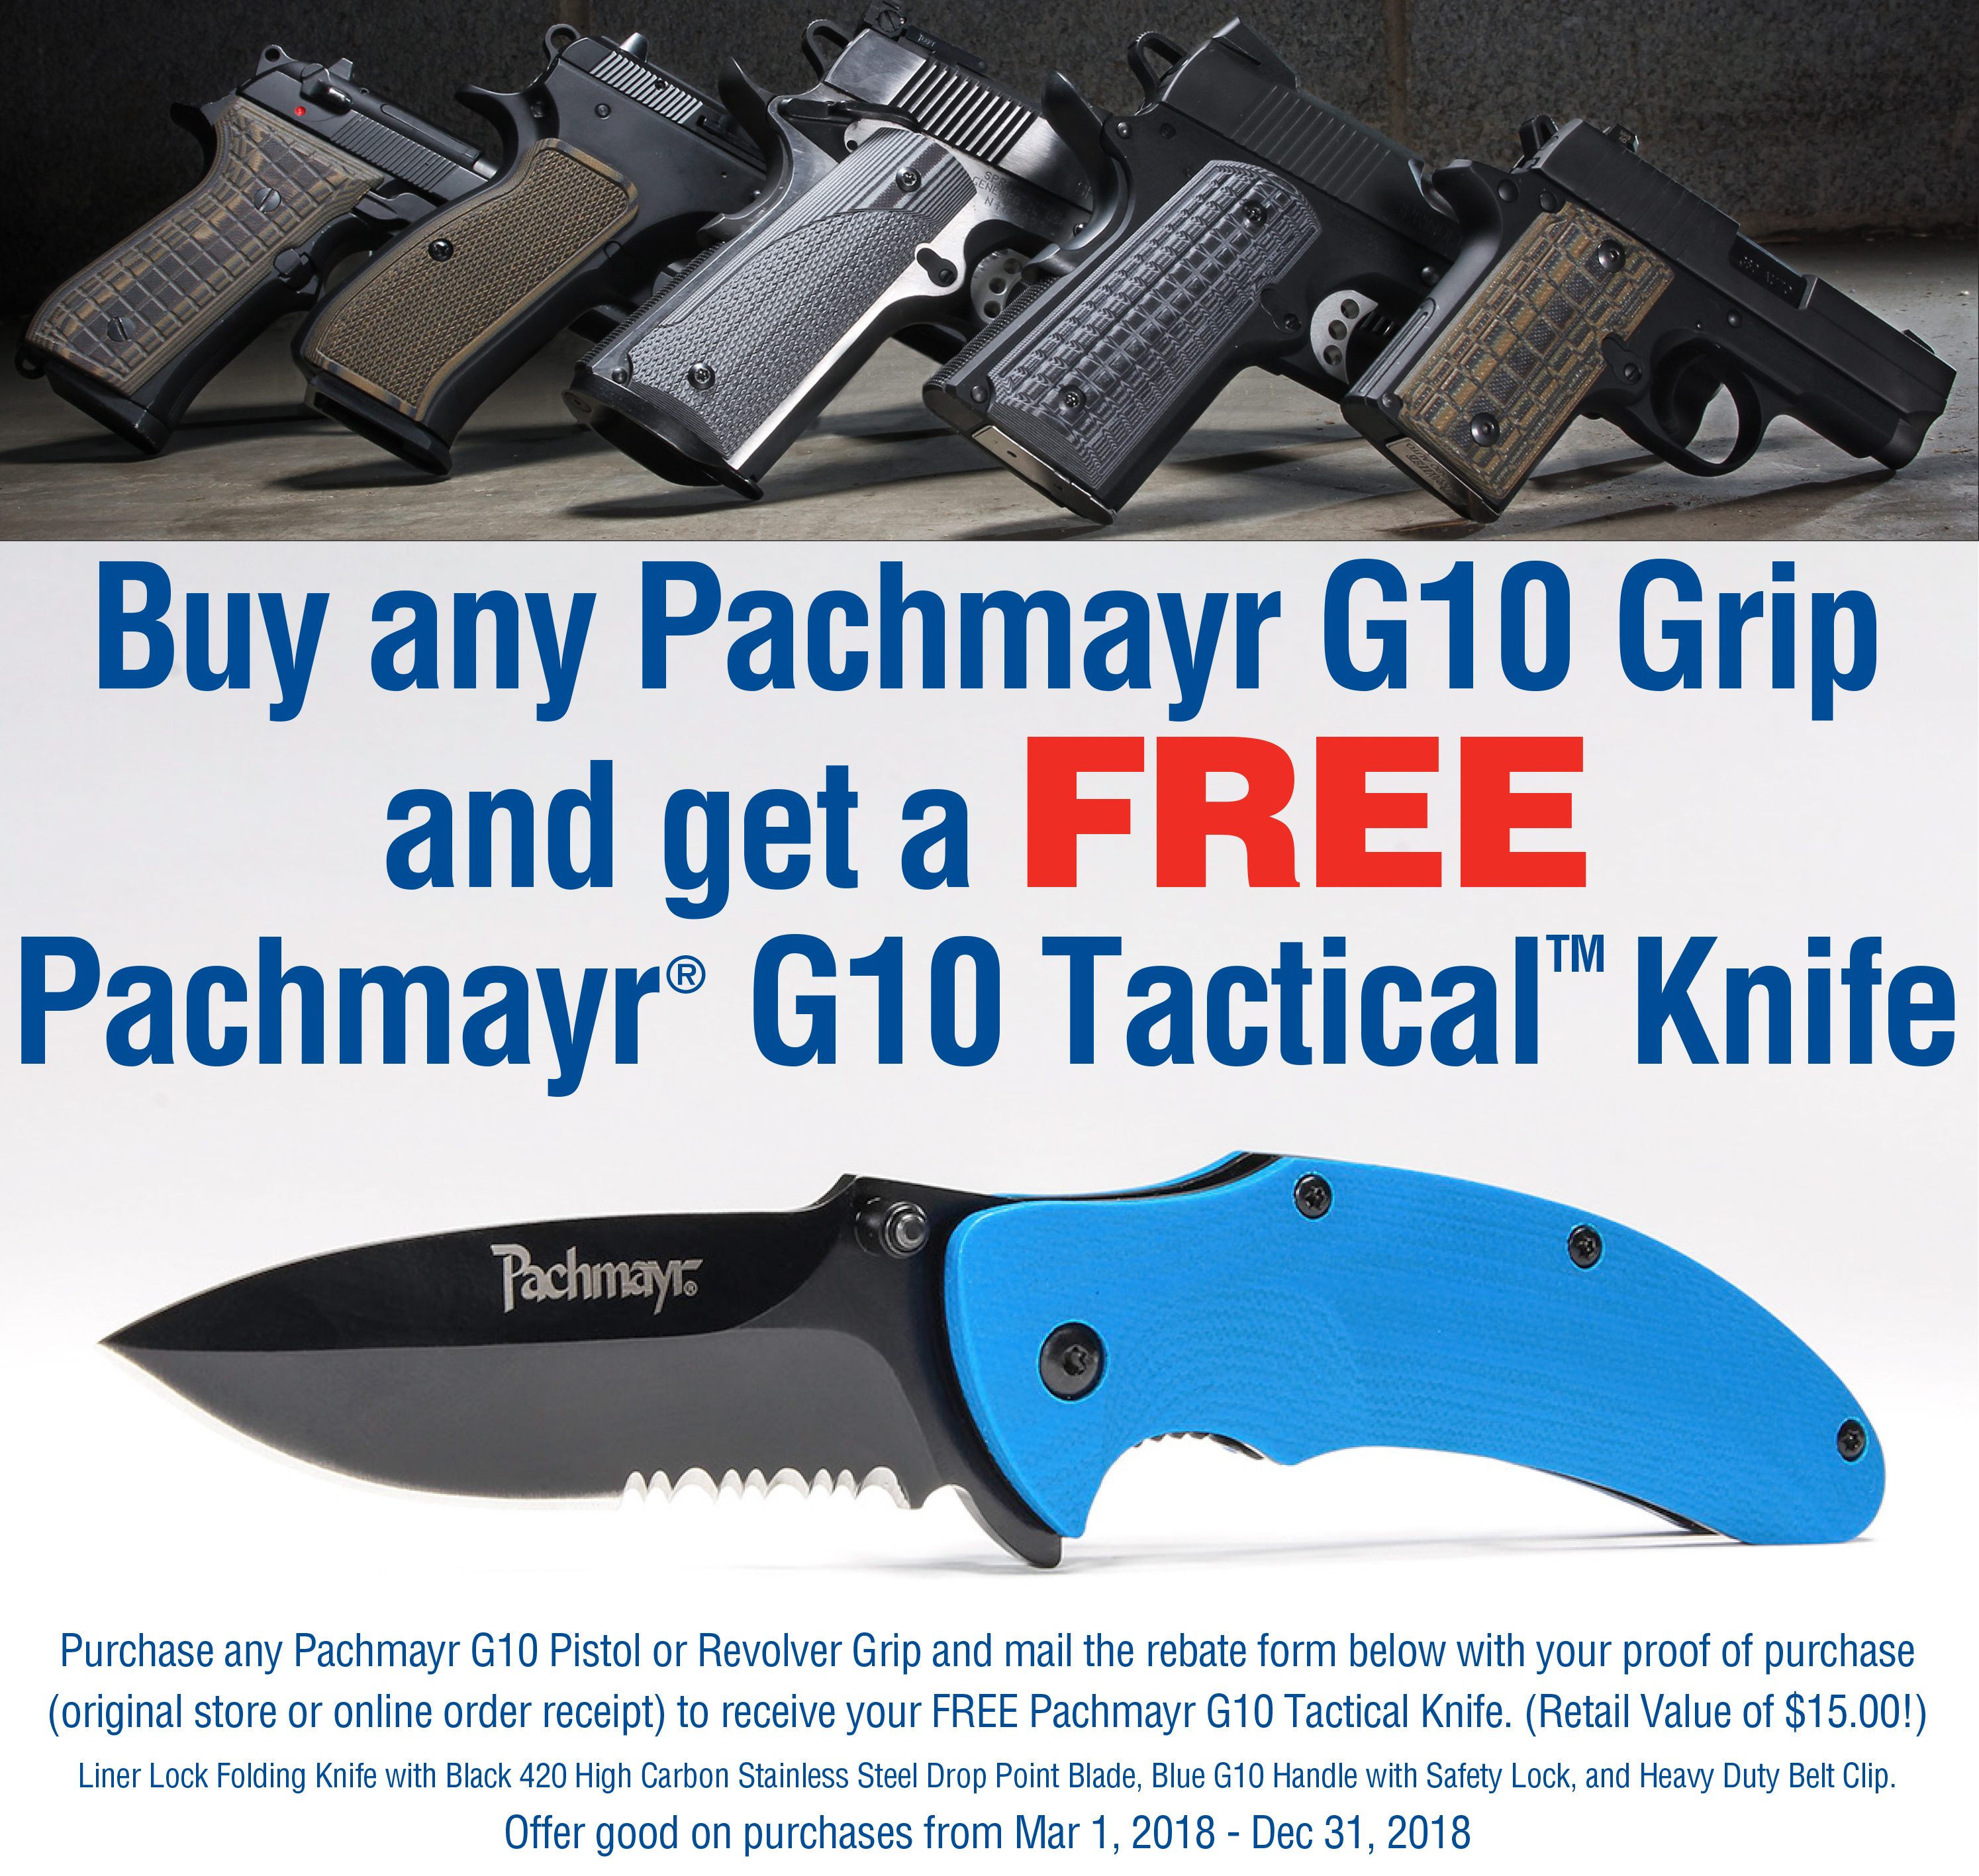 Lyman® Products Pachmayr® G10 Knife, Mail in Rebate, Going on Now Until End of Year